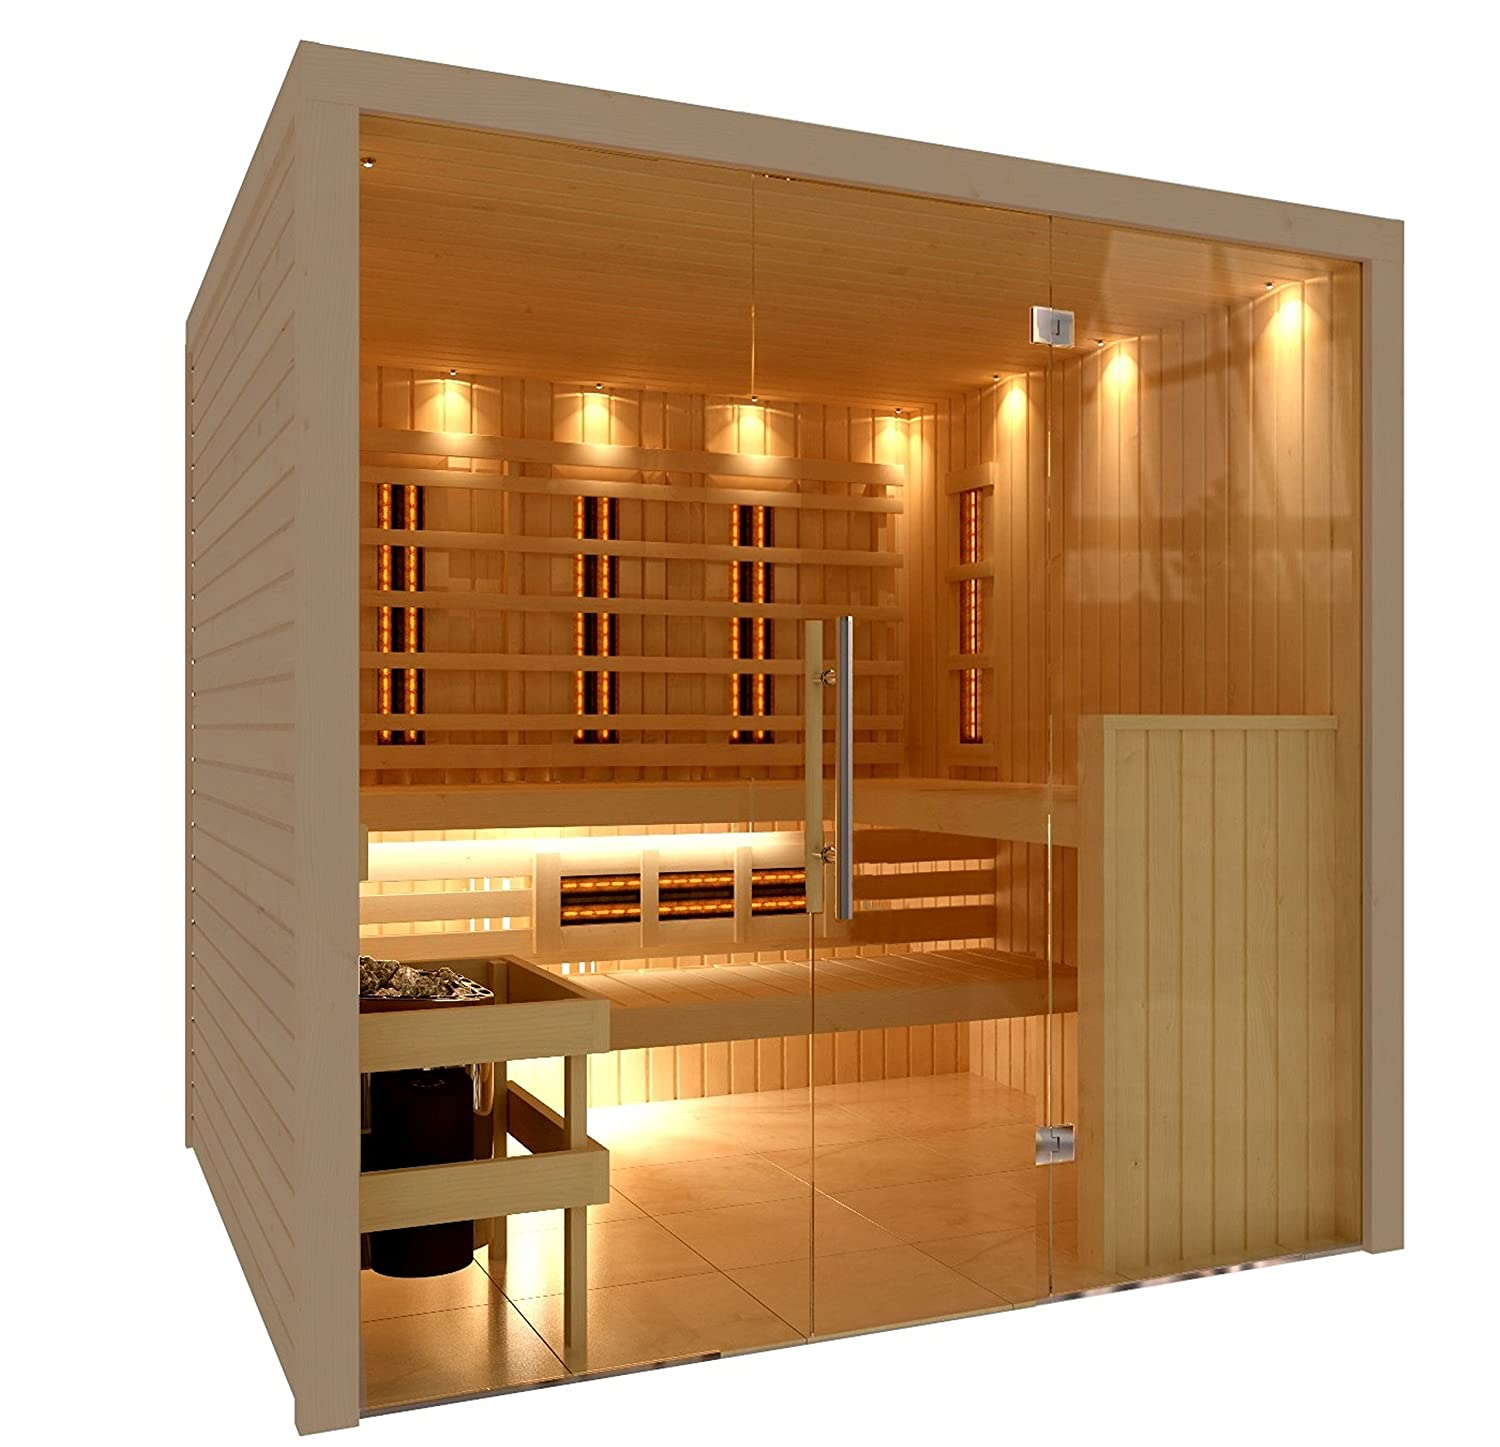 C-Quel Royal Sauna Infrarot Kombination Glasfront 1946mm x 1555mm x ...